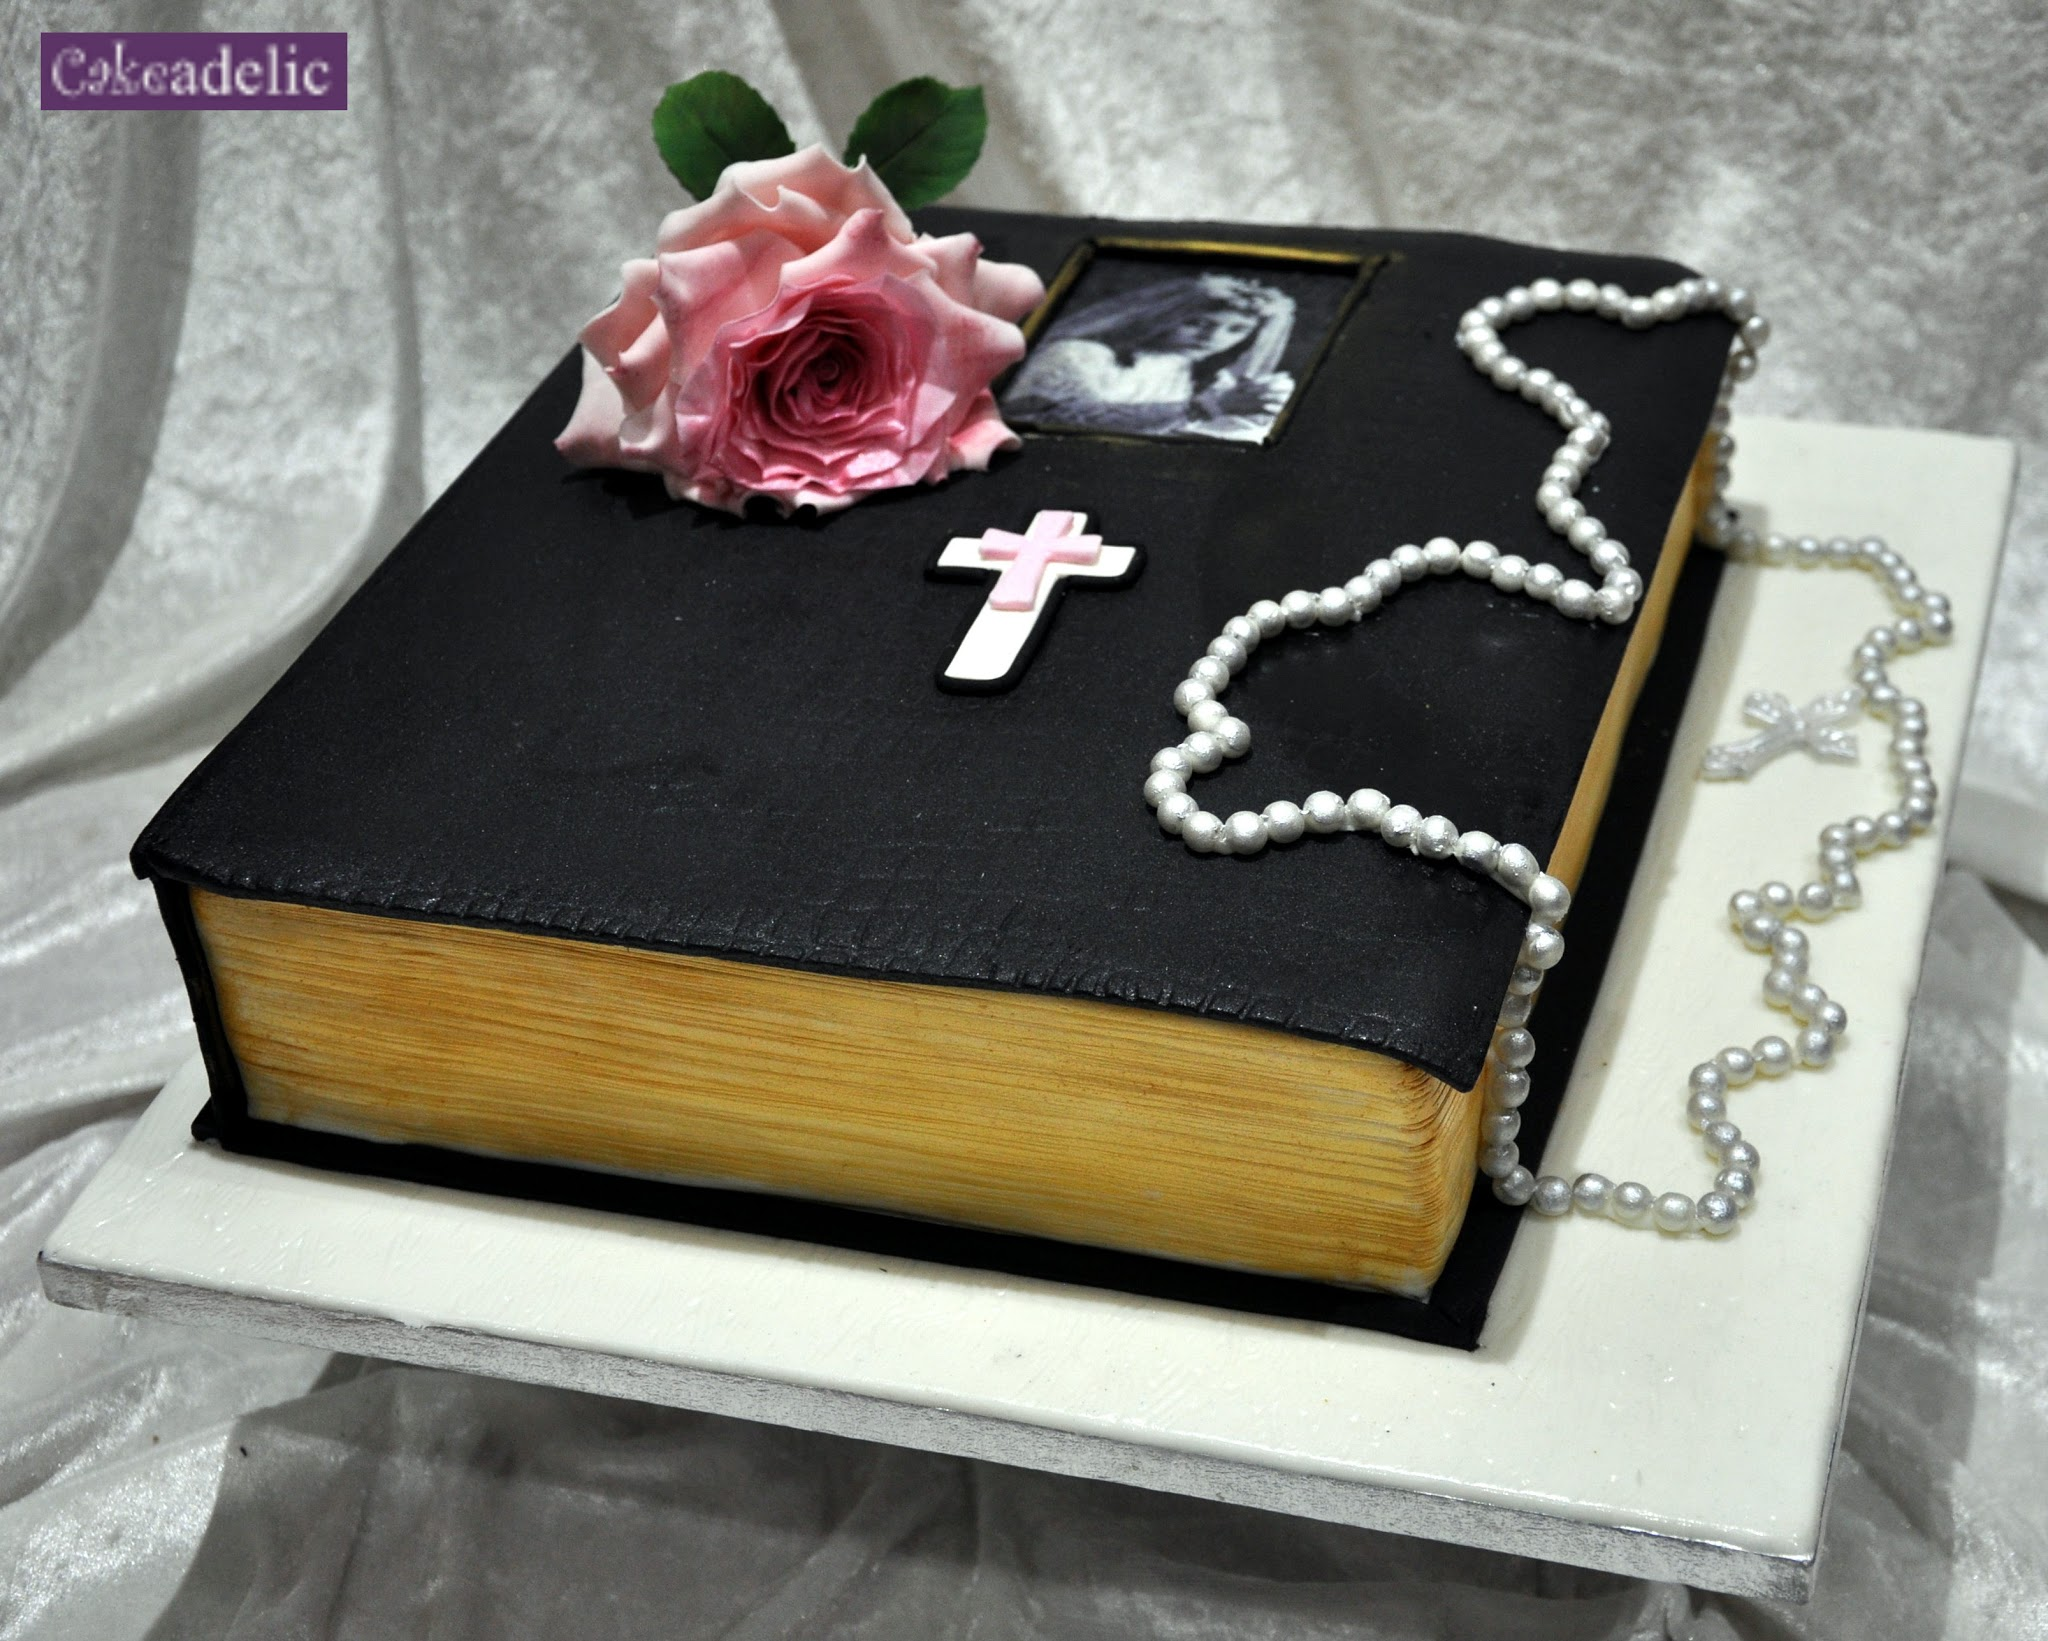 Bible Birthday Cake A wonderful birthday cake in the shape of a